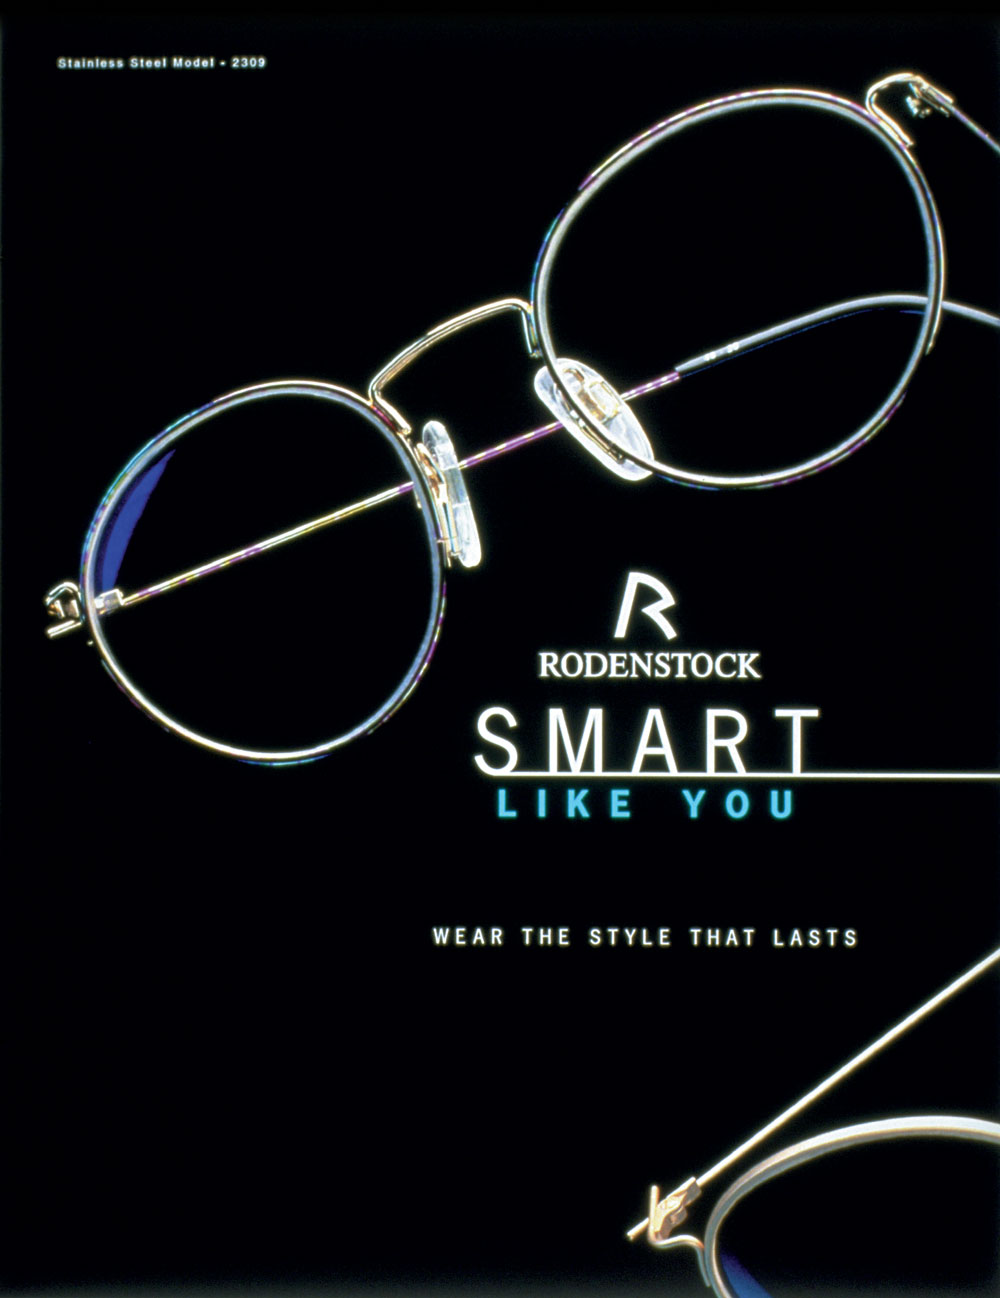 Rodenstock: Wear The Style That Lasts